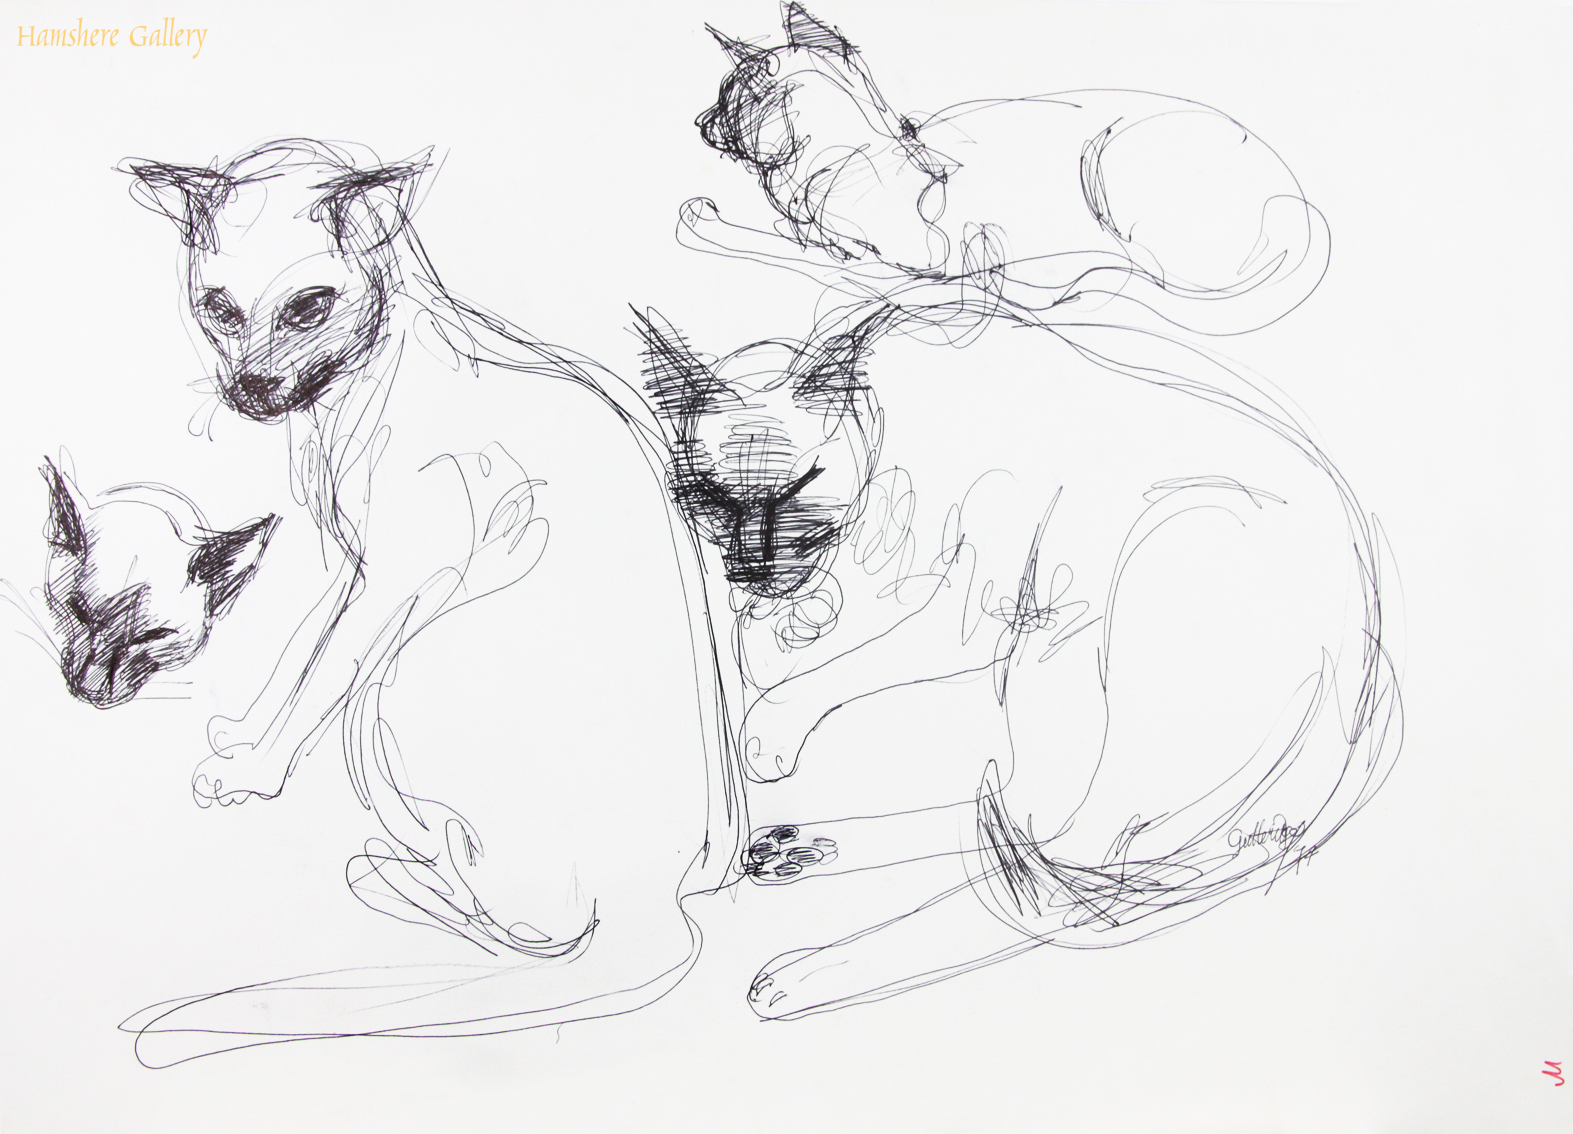 Click to see full size:    Pen and ink studies of Siamese cats by Thomas Gordon Lindsay Gutteridge (English, 1923-1907)- Pen and ink studies of Siamese cats by Thomas Gordon Lindsay Gutteridge (English, 1923-1907)